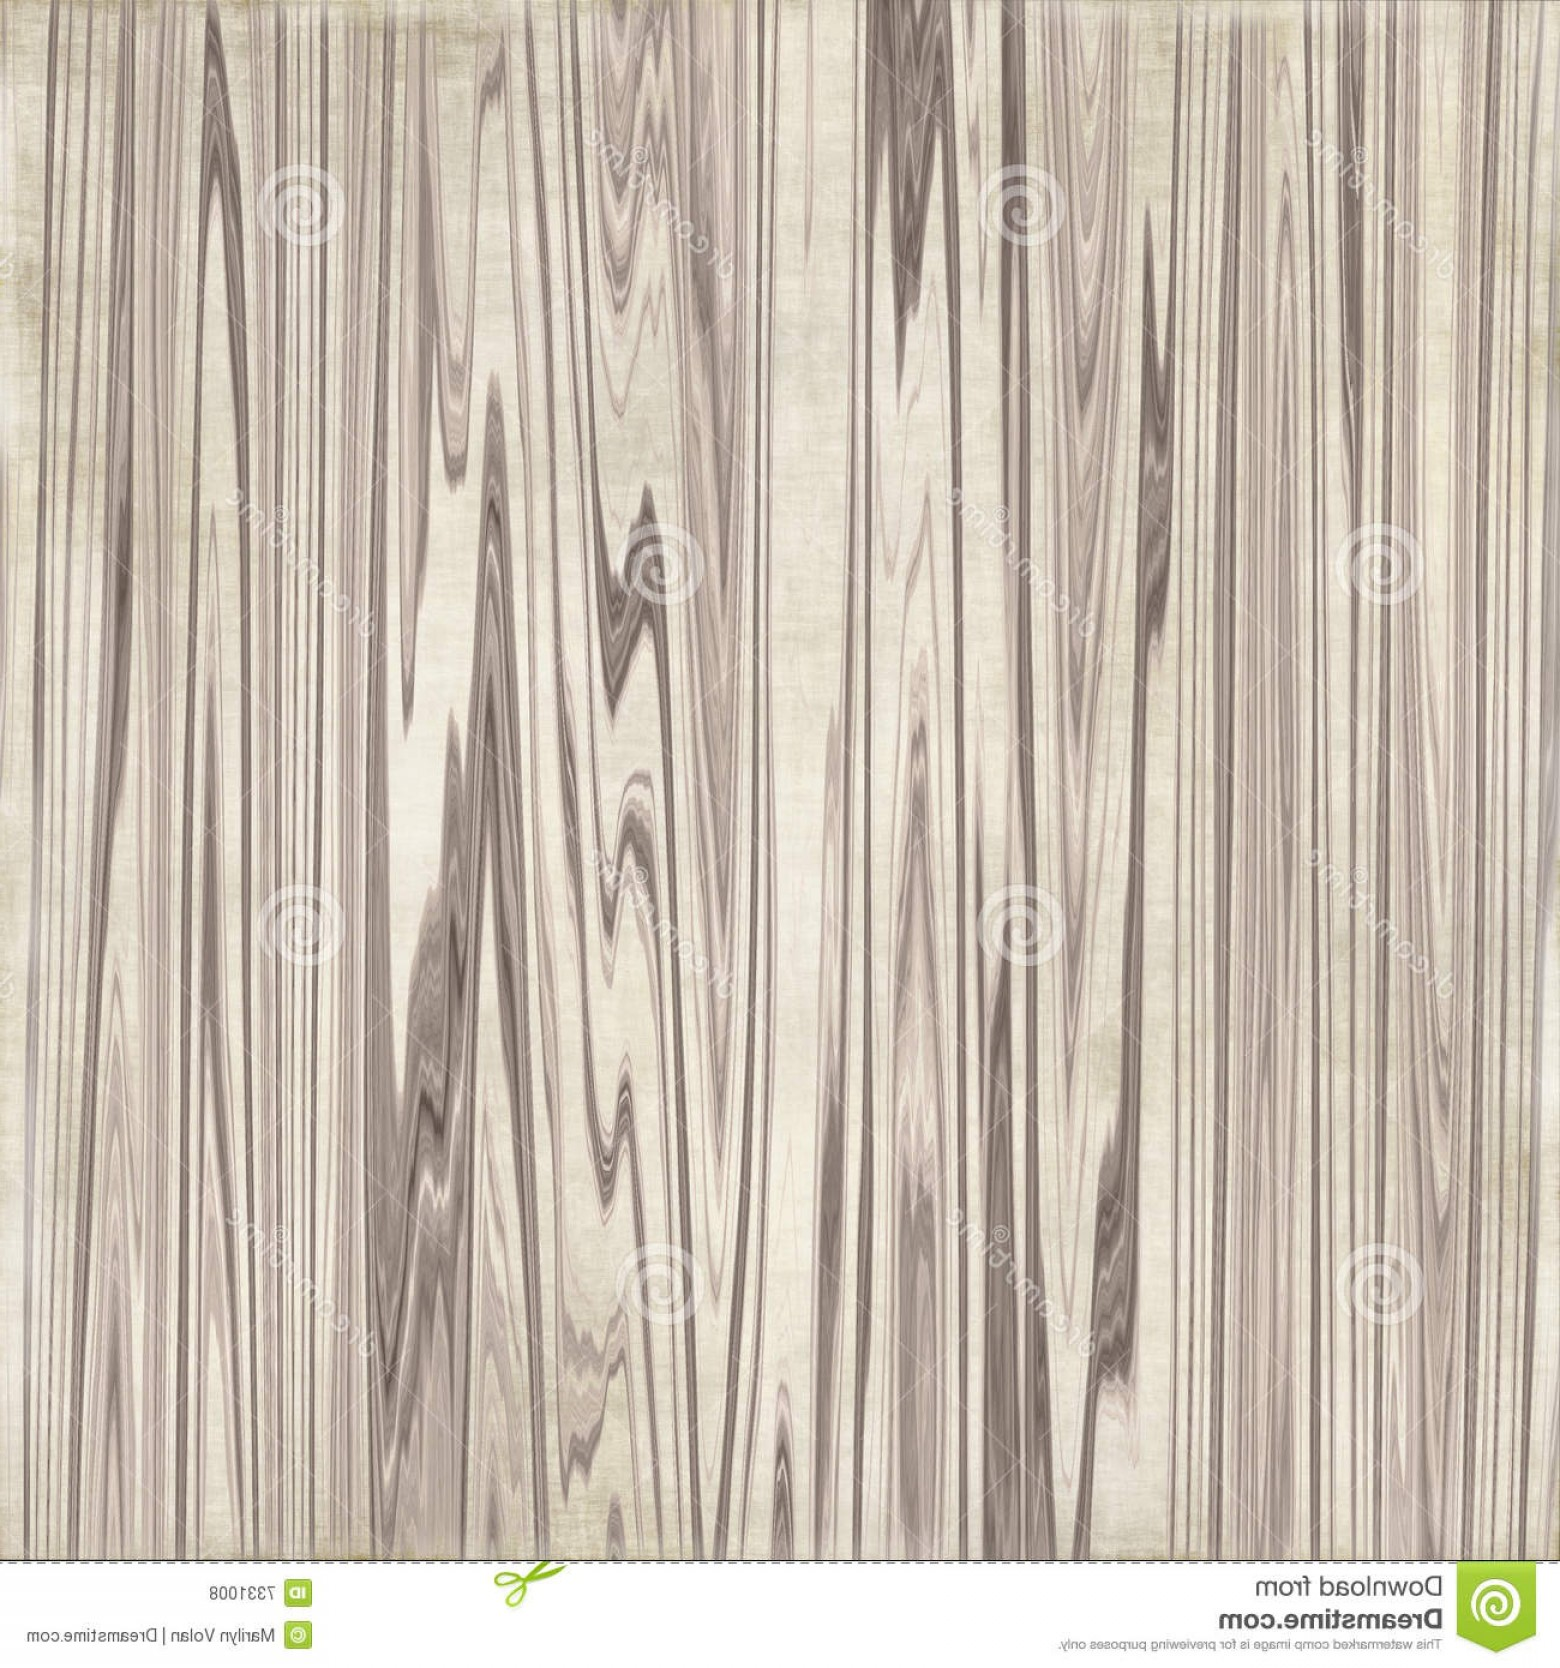 Wood Grain Texture Vector: Royalty Free Stock Photos Vector Light Wood Background Image